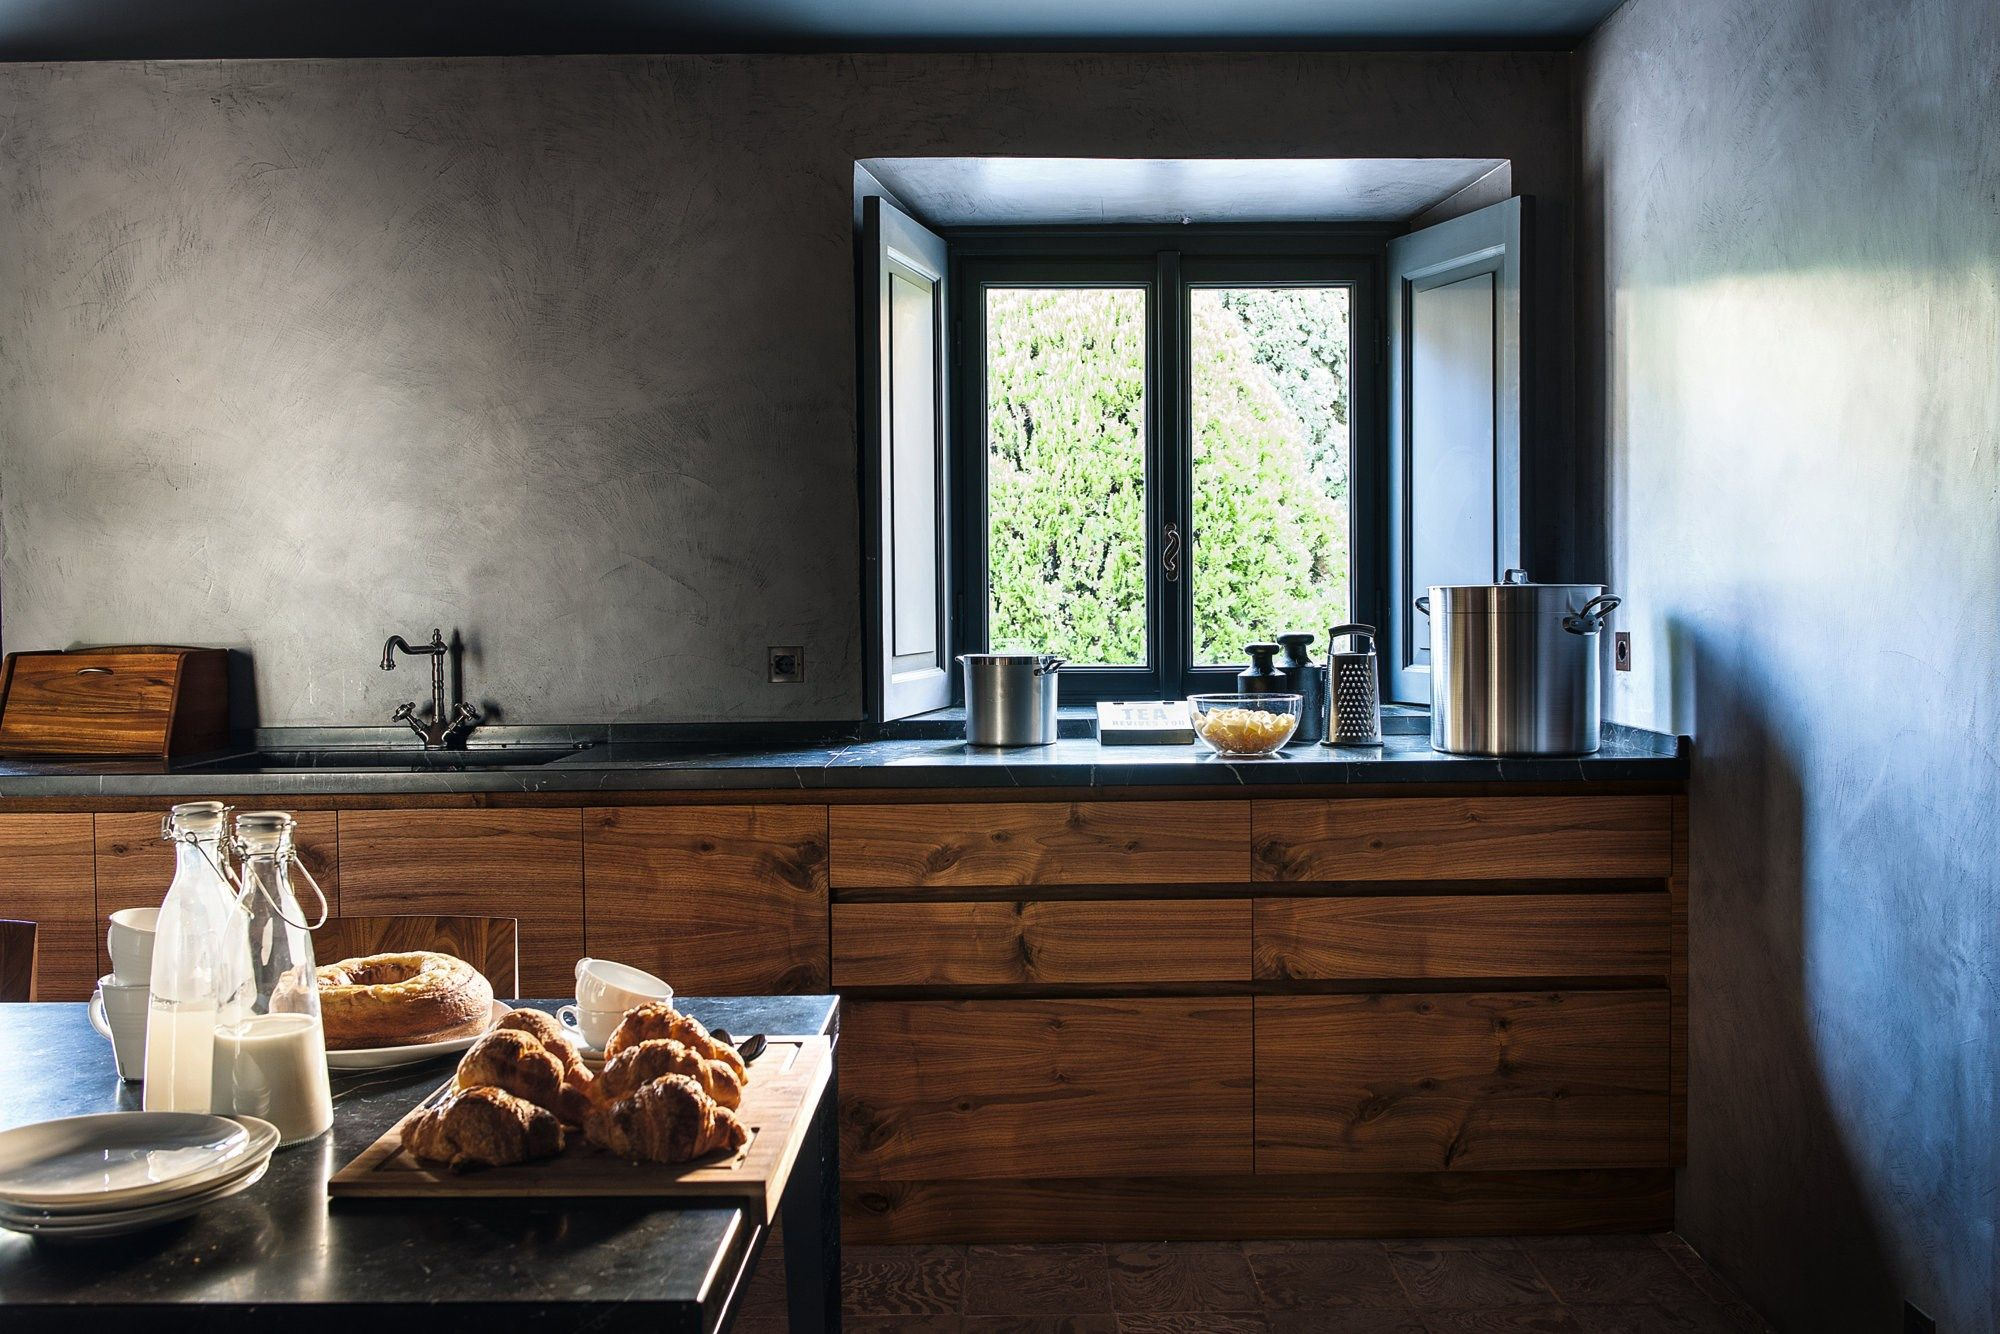 Fitted kitchen LA CUCINA By Riva 1920 design Matteo Thun